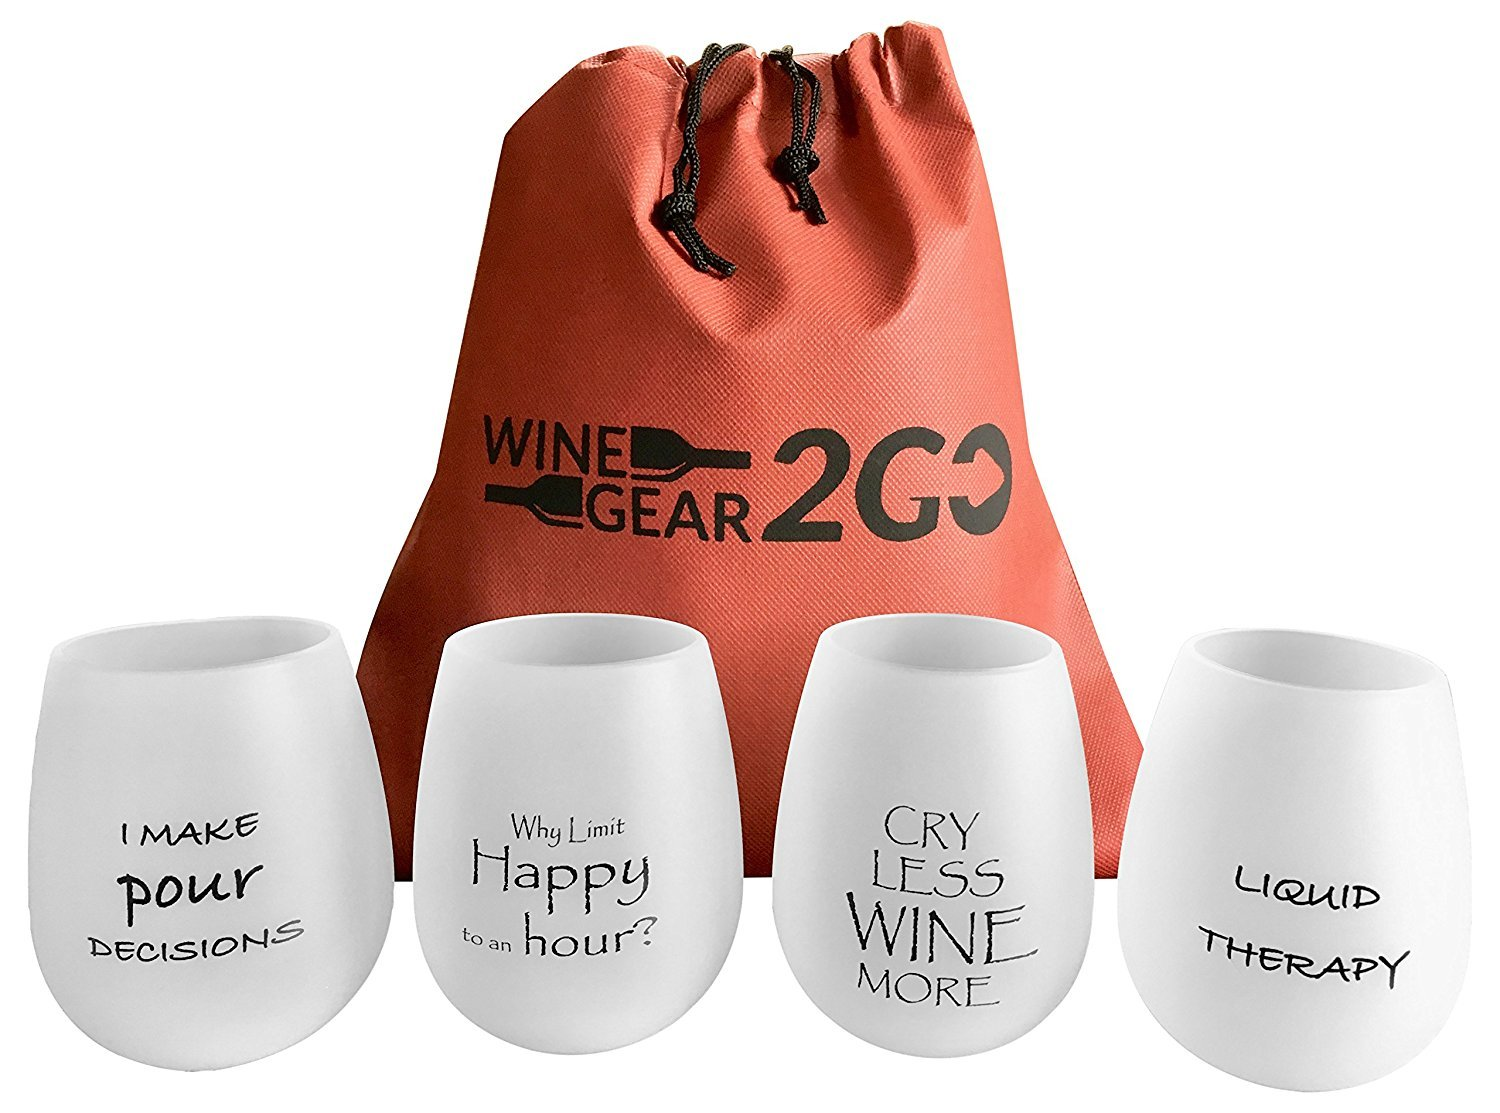 4 Wine Glasses Unbreakable W/Bag-Great Gift Food Grade Silicone Funny and Durable Shatterproof Stemless Great for Wine Beer Whiskey Cocktail any Beverage Outdoor Party Pool Camping Beach Frosted wine Gear 2GO SYNCHKG114727